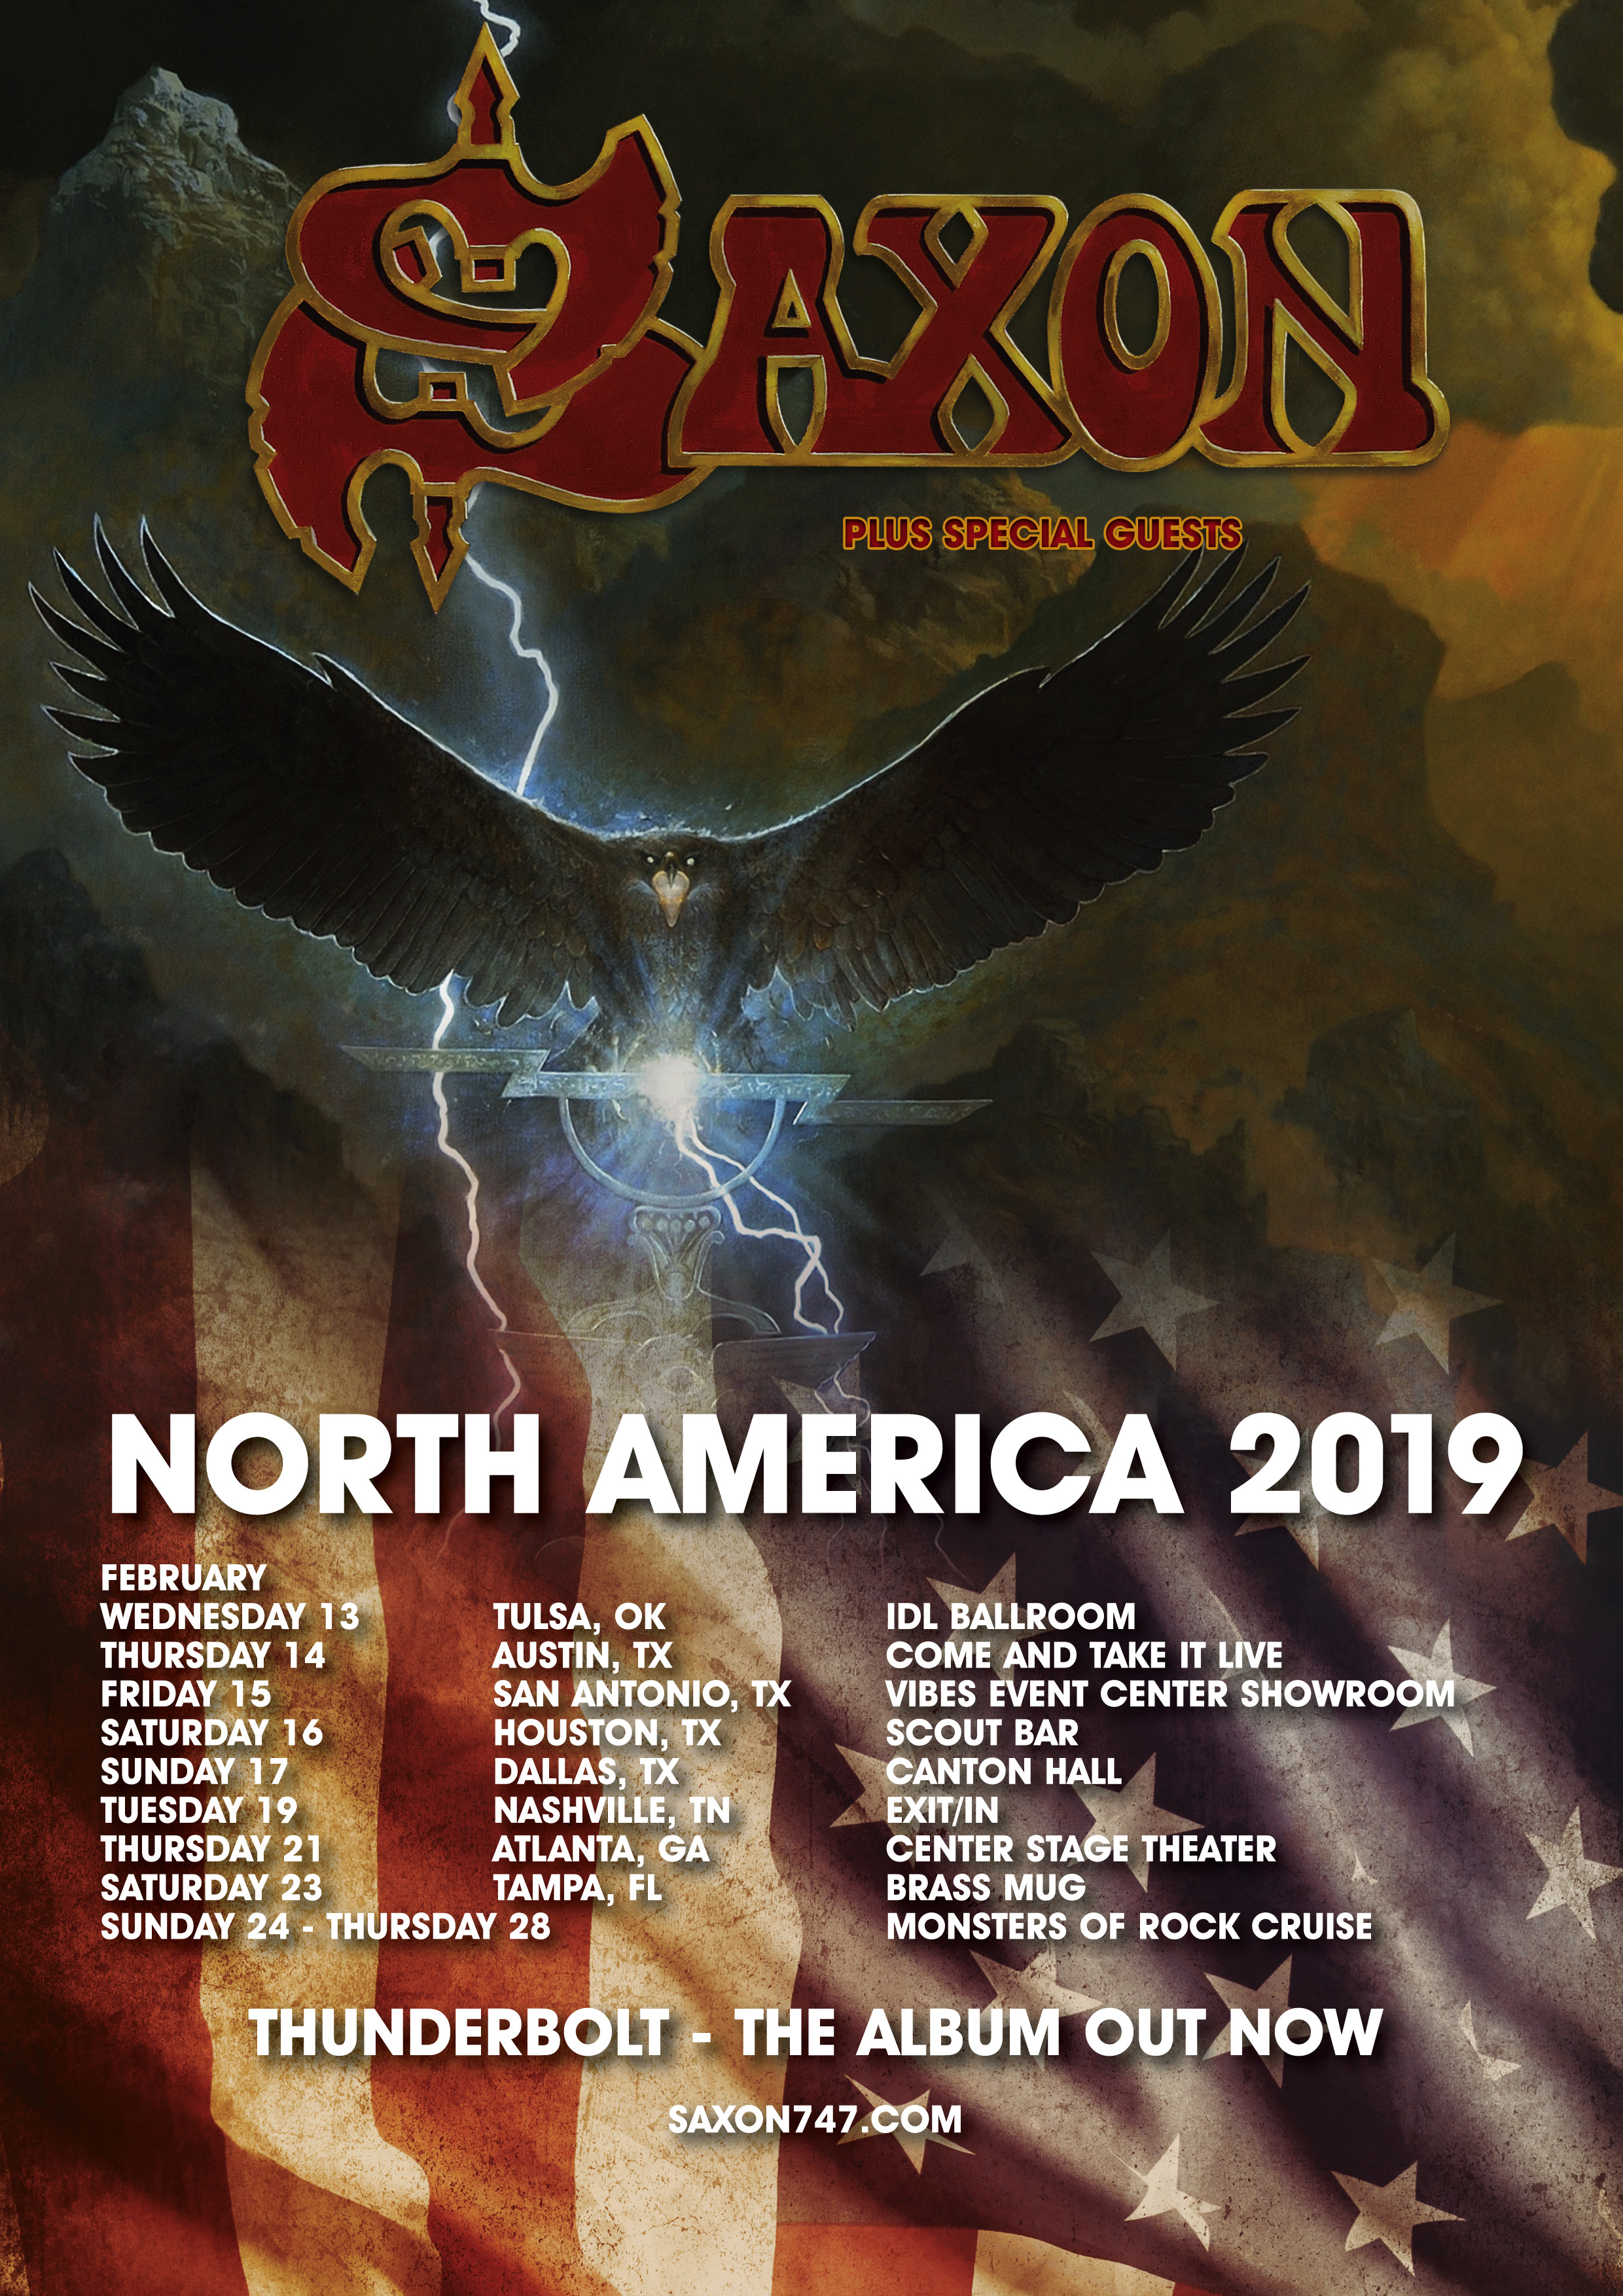 SAXON ANNOUNCE US TOUR DATES IN EARLY 2019! - Silver Lining Music